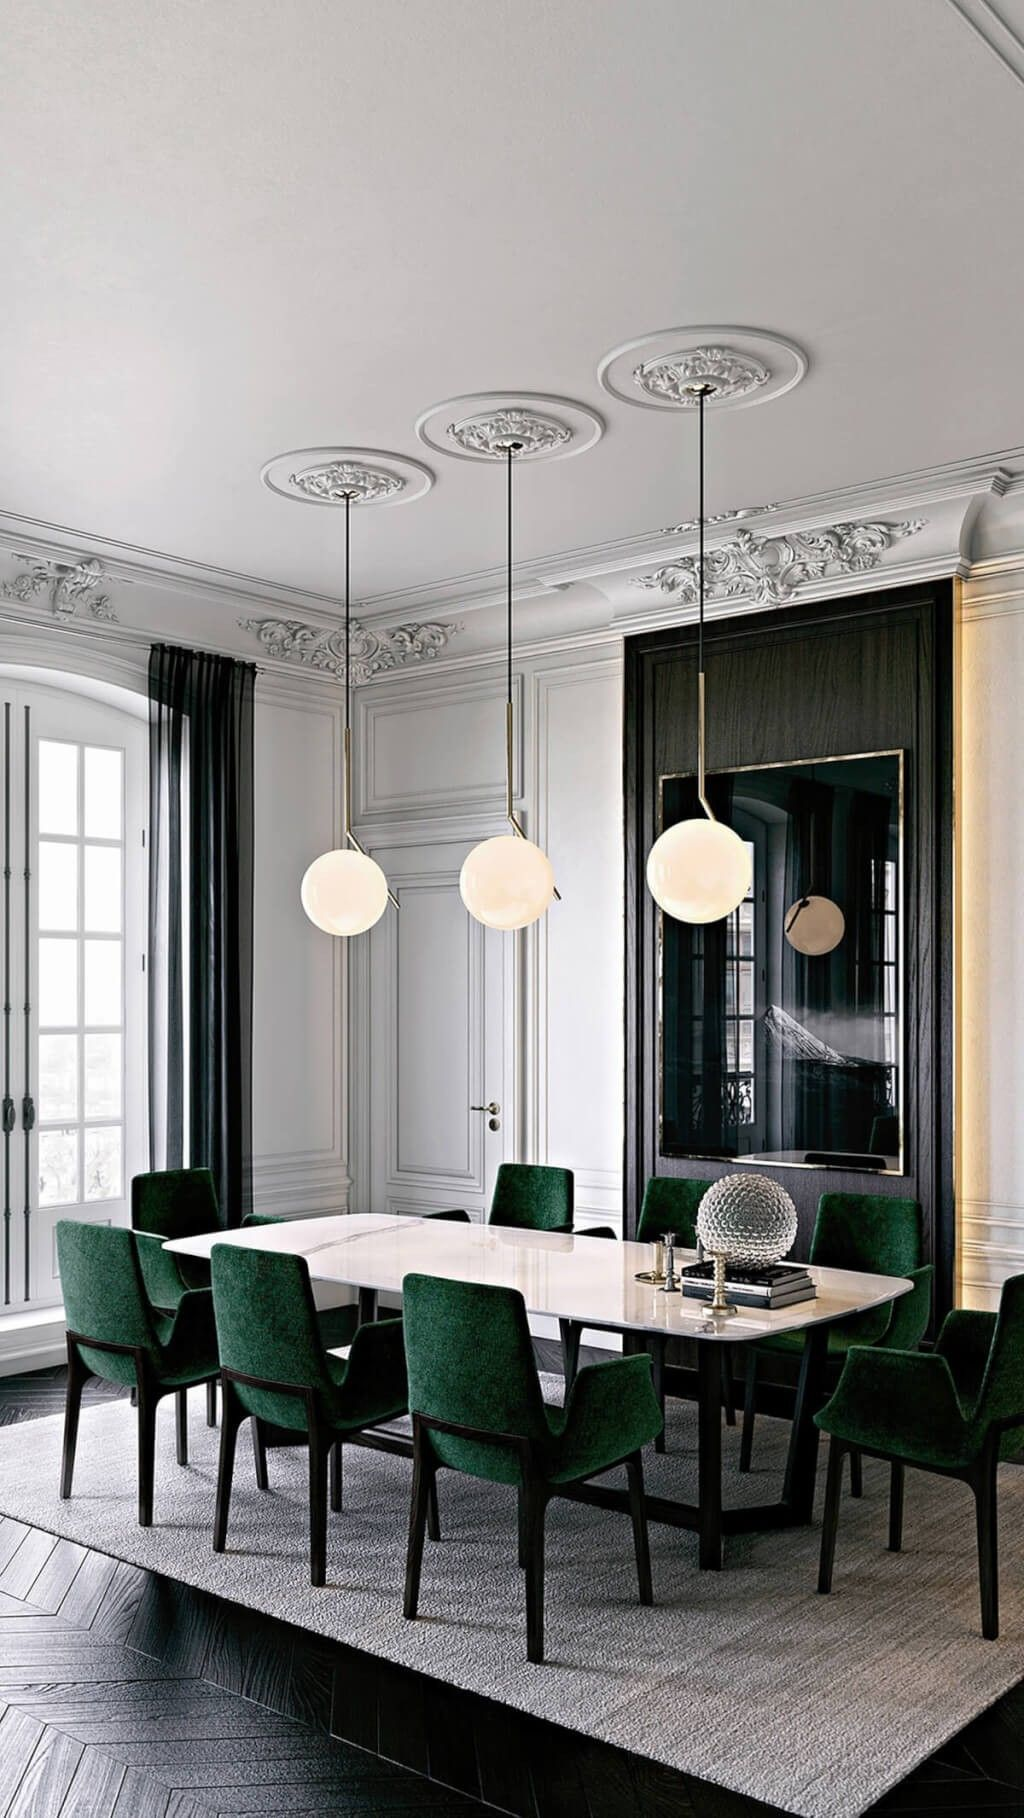 White wall emerald green accents | Luxury dining, Luxury ...